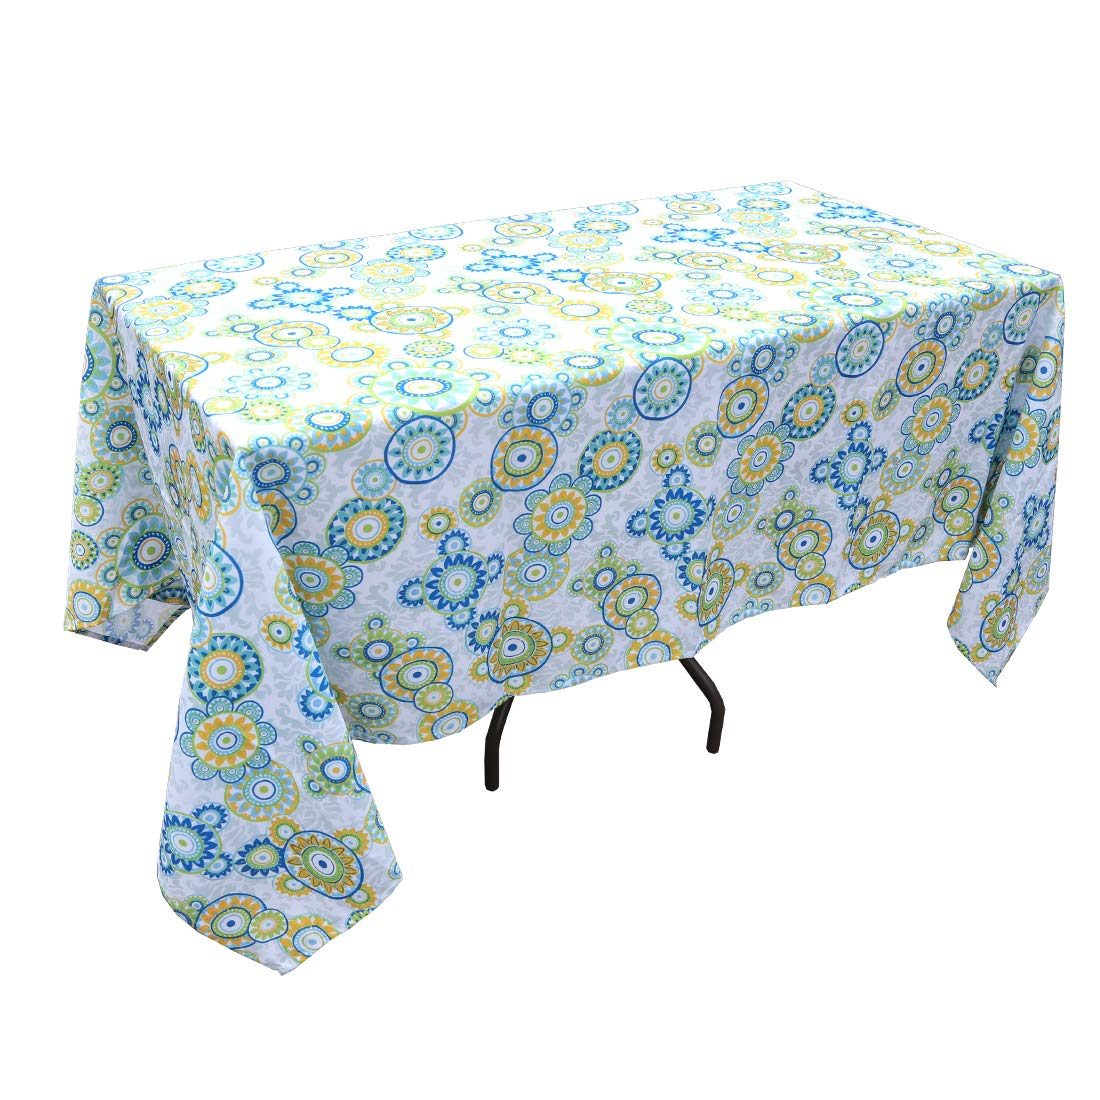 "Eternal Beauty 60 x 120"" Rectangle Tablecloth Spill Proof Polyester Printed Tablecloths for Picnic Indoor Outdoor Table(Floral Circle)"